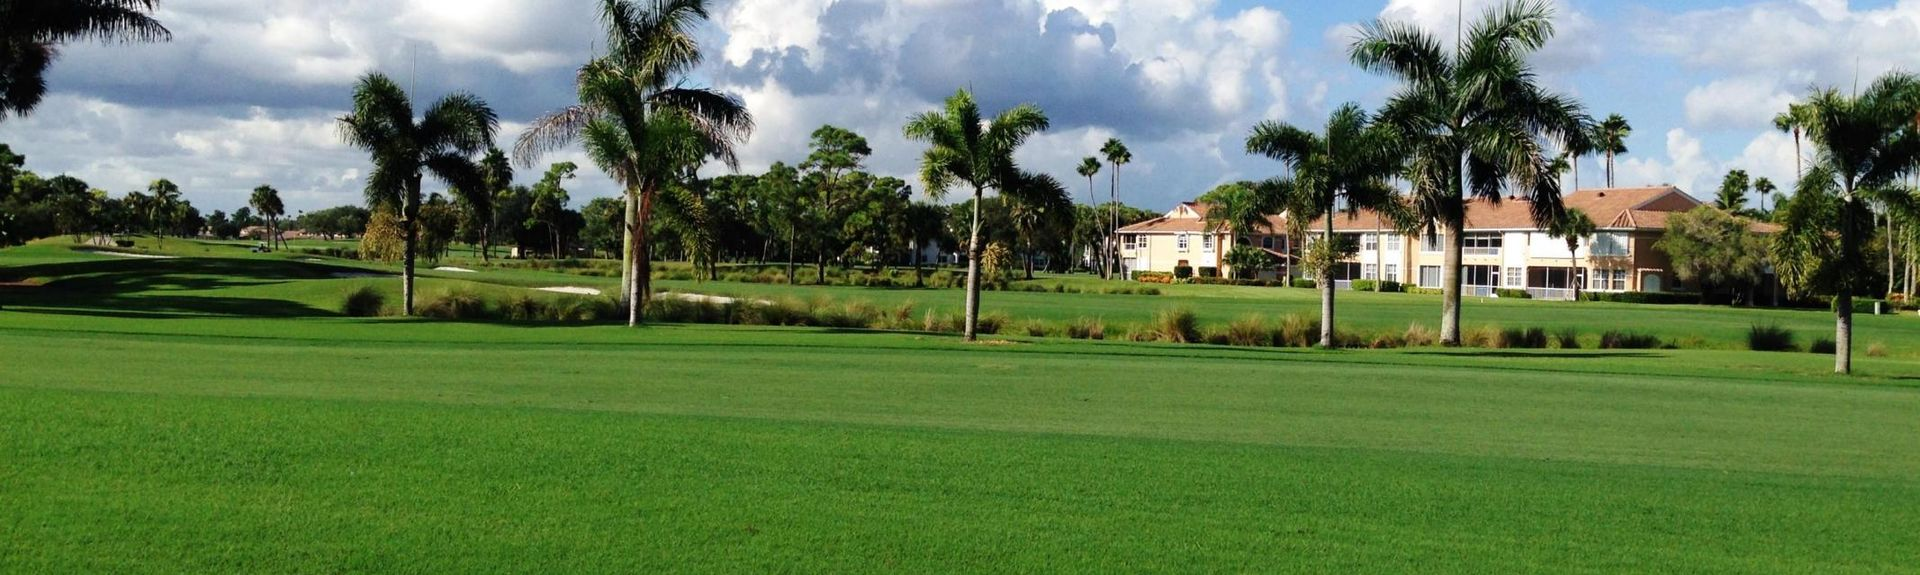 Golf Villas, PGA National Resort & Spa, Palm Beach Gardens, FL, USA